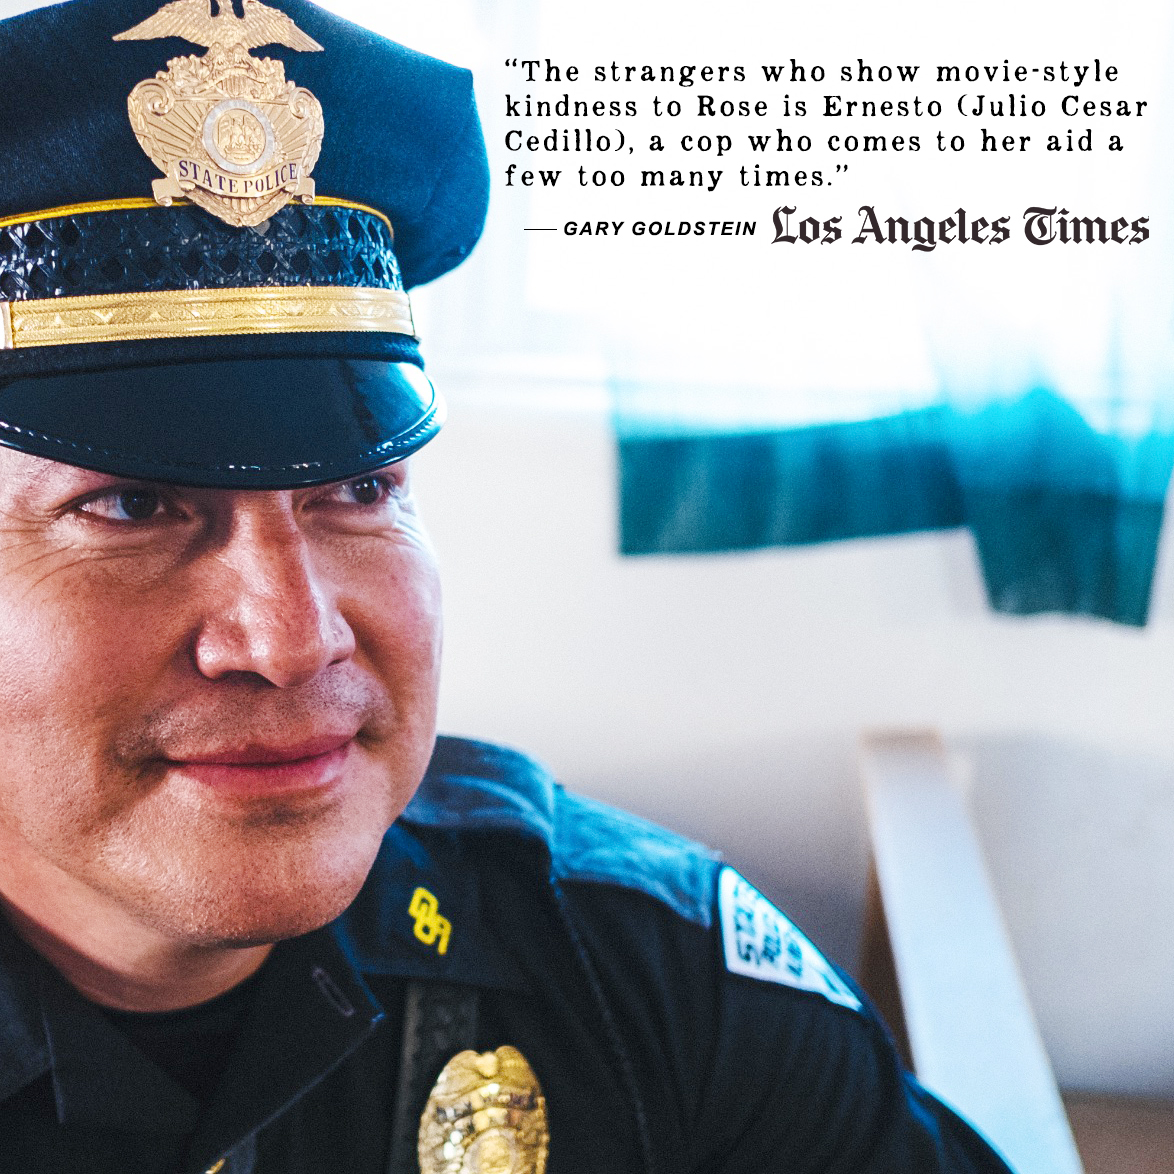 Rose_Julio_Cedillo_LATimes.jpg